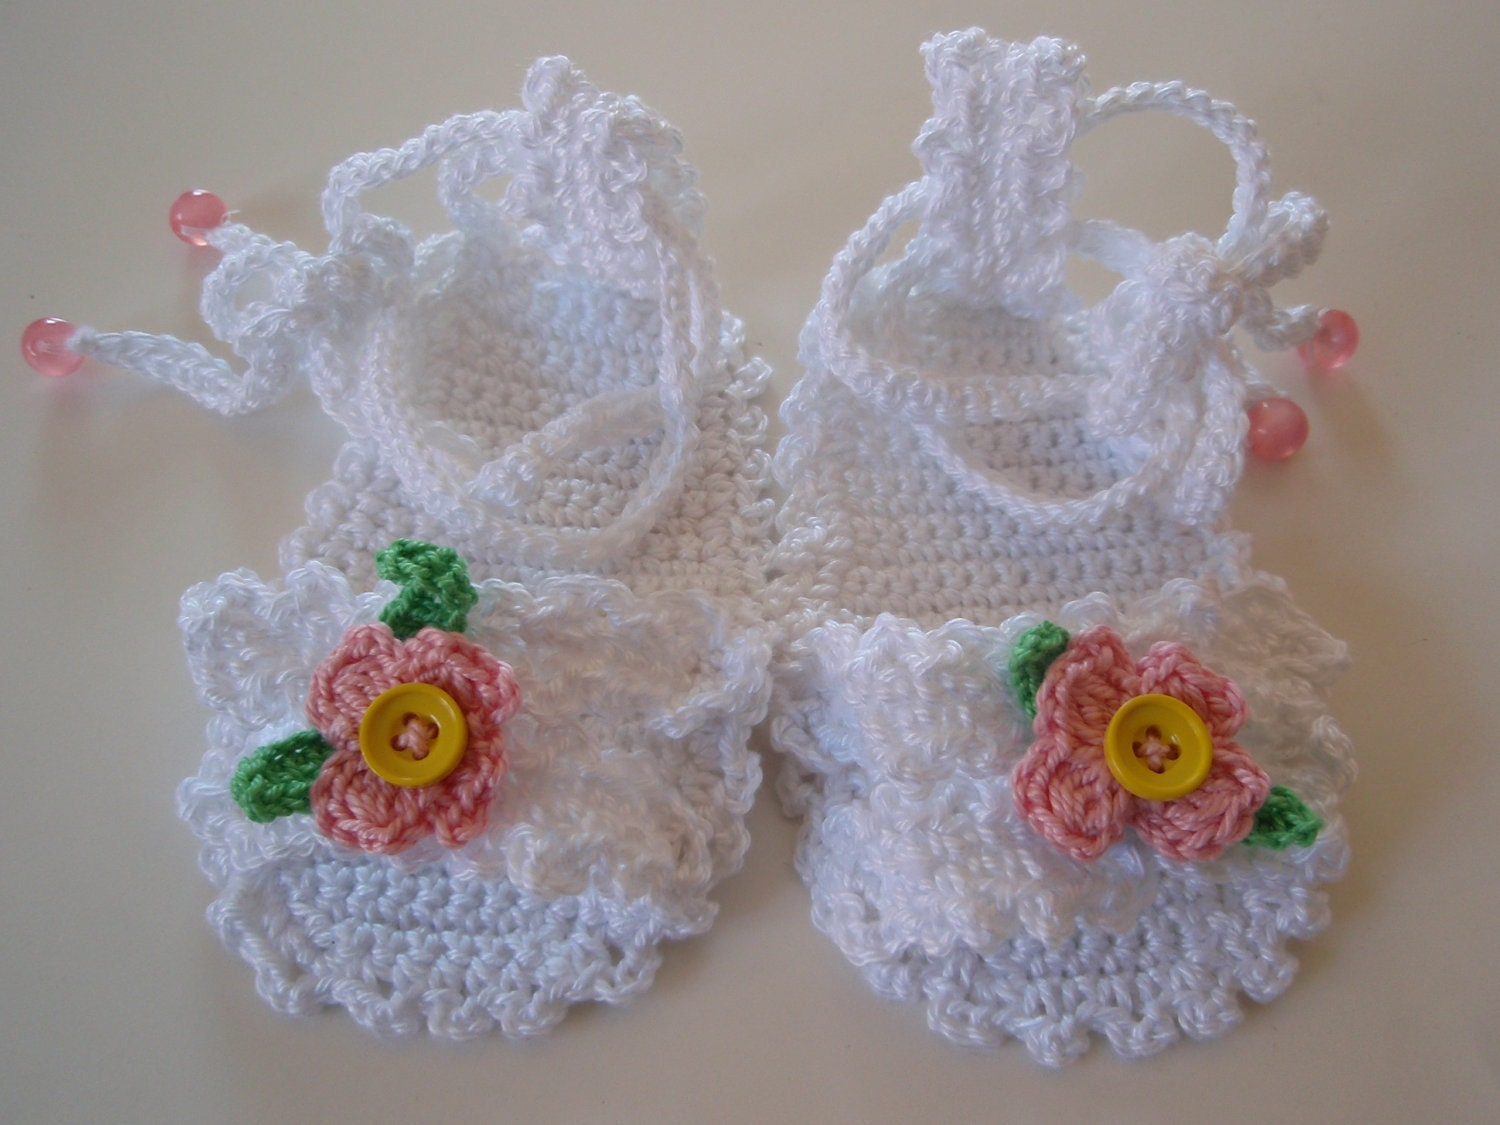 Free Printable Crochet Patterns For Baby Sandals : PDF Pattern Crochet Baby Sandals 3/6 Months Free Shipping